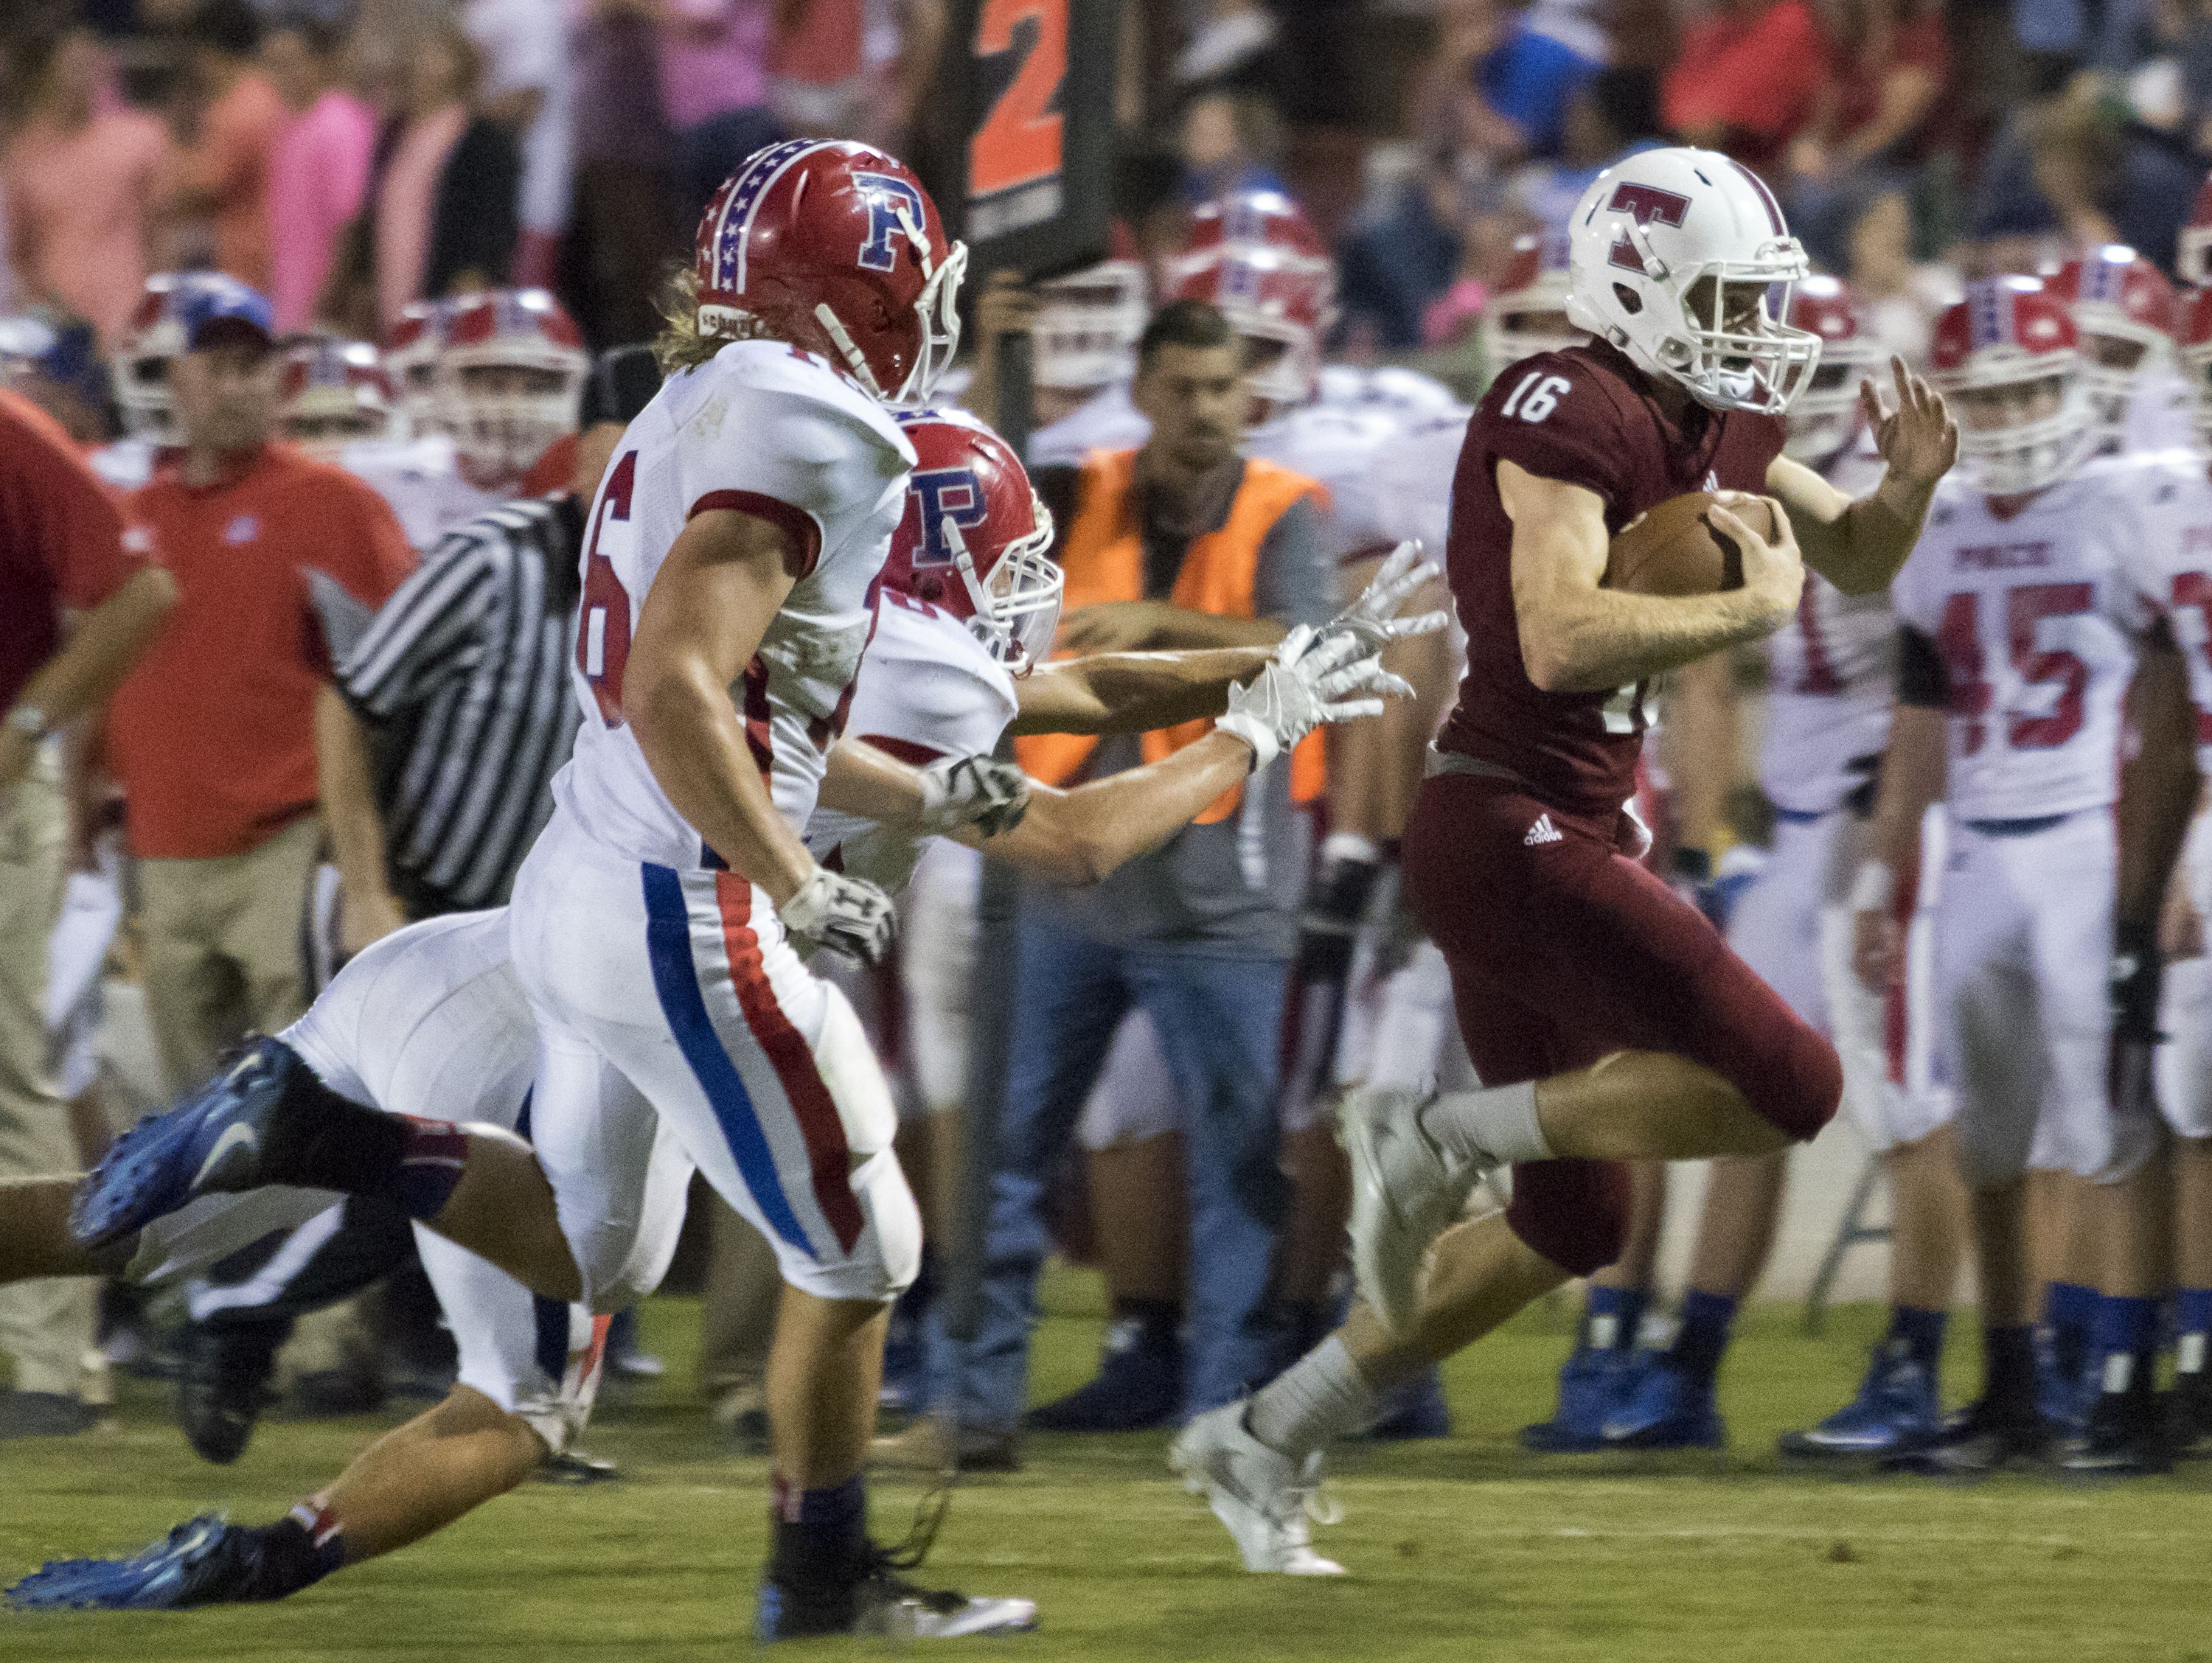 Quarterback Jack Henry (16) escapes the Pace defense for a big run during the Pace vs Tate football game at Tate High School on Friday, October 7, 2016.